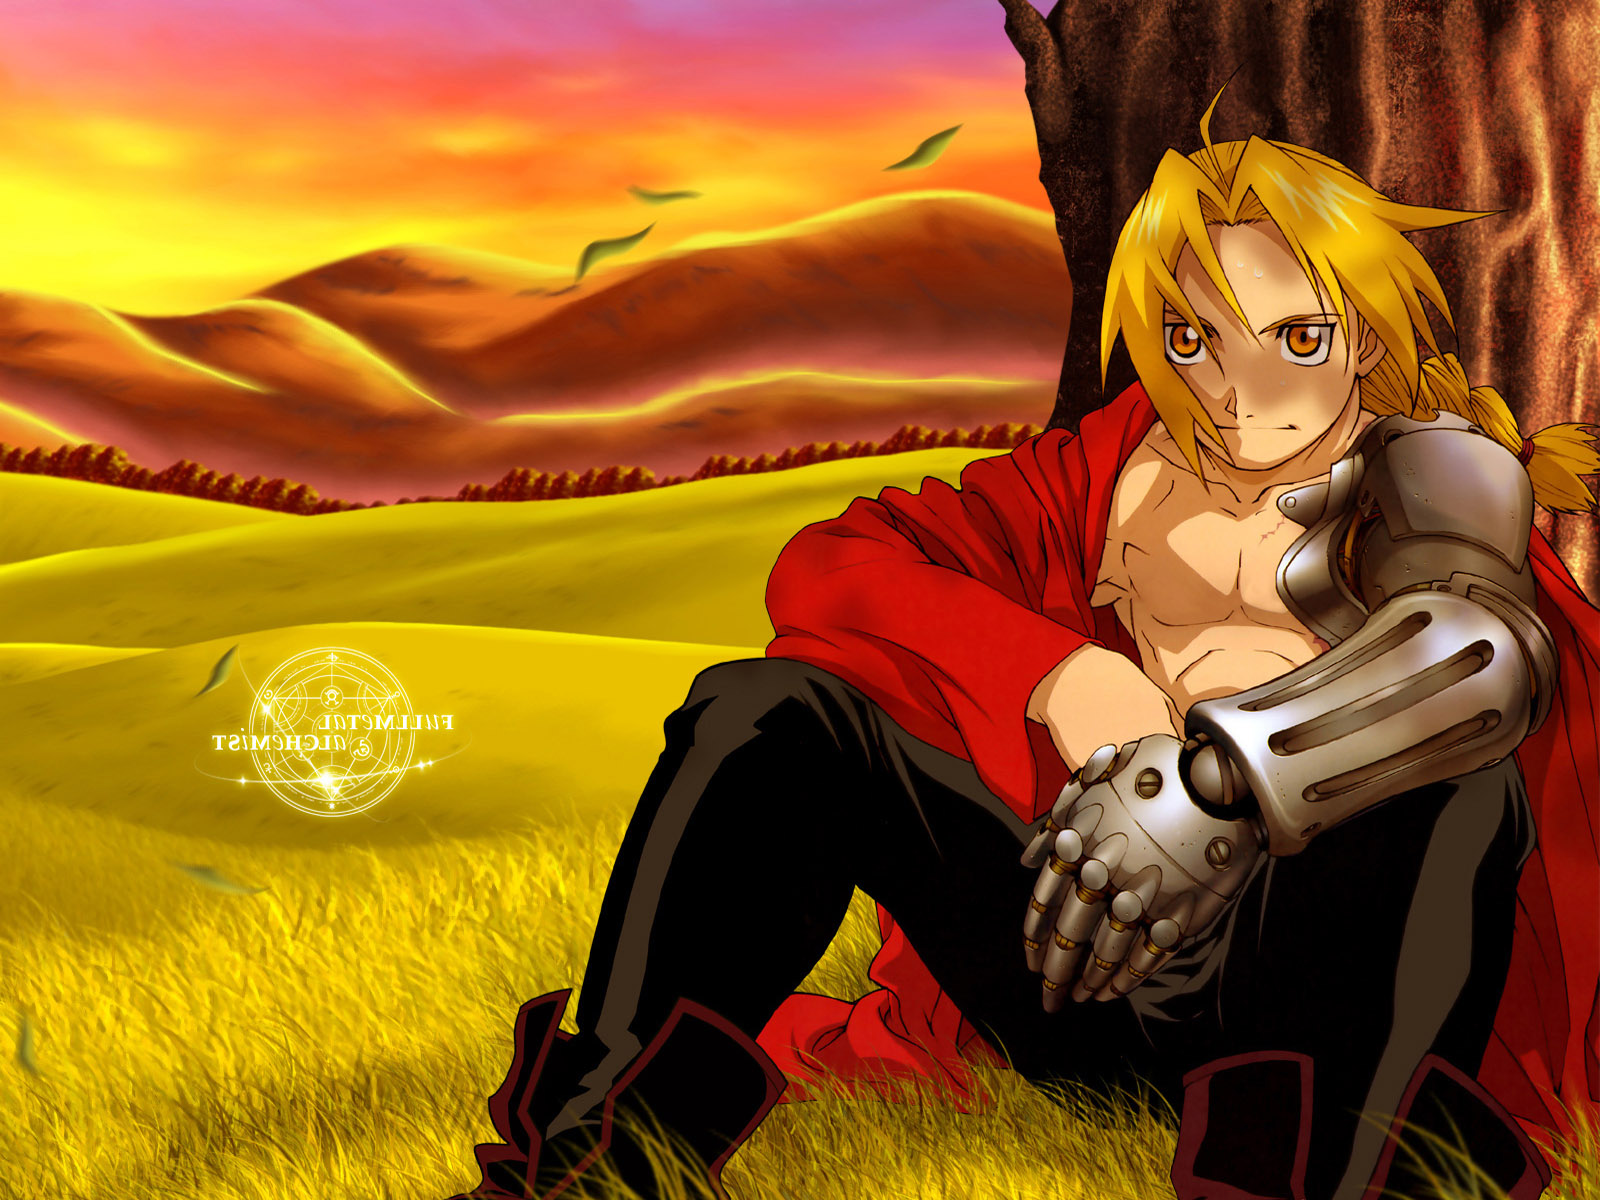 Full Metal Alchemist Wallpaper HD Backgrounds Images Pictures 1600x1200